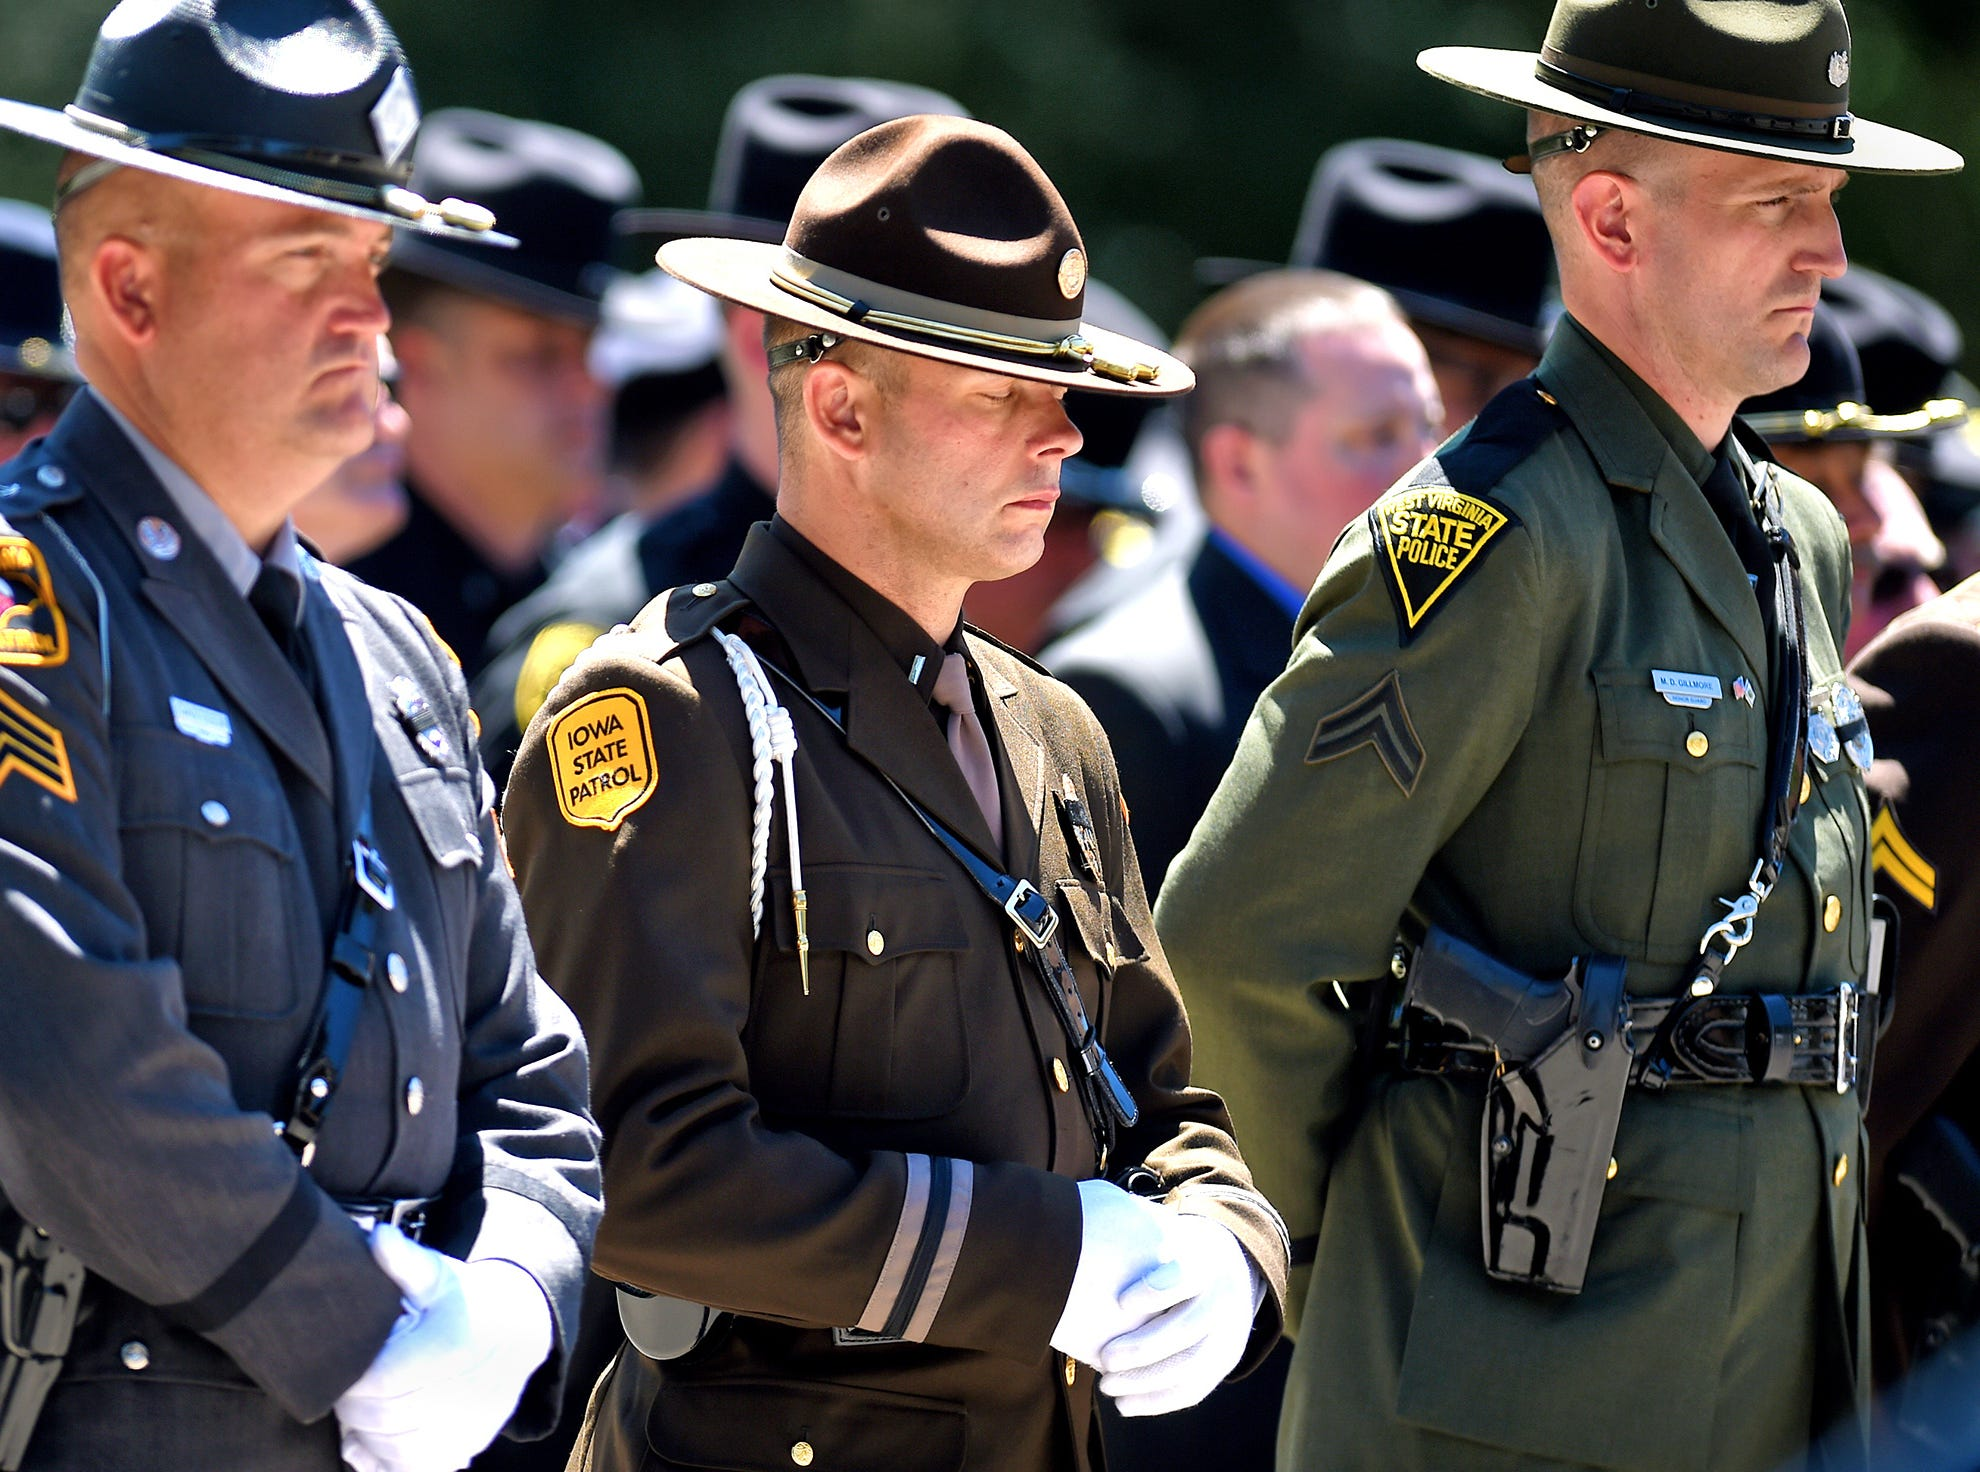 Funeral service for Trooper Nicholas F. Clark at the James A. McLane Physical Education Center, Alfred University, July 8, 2018.